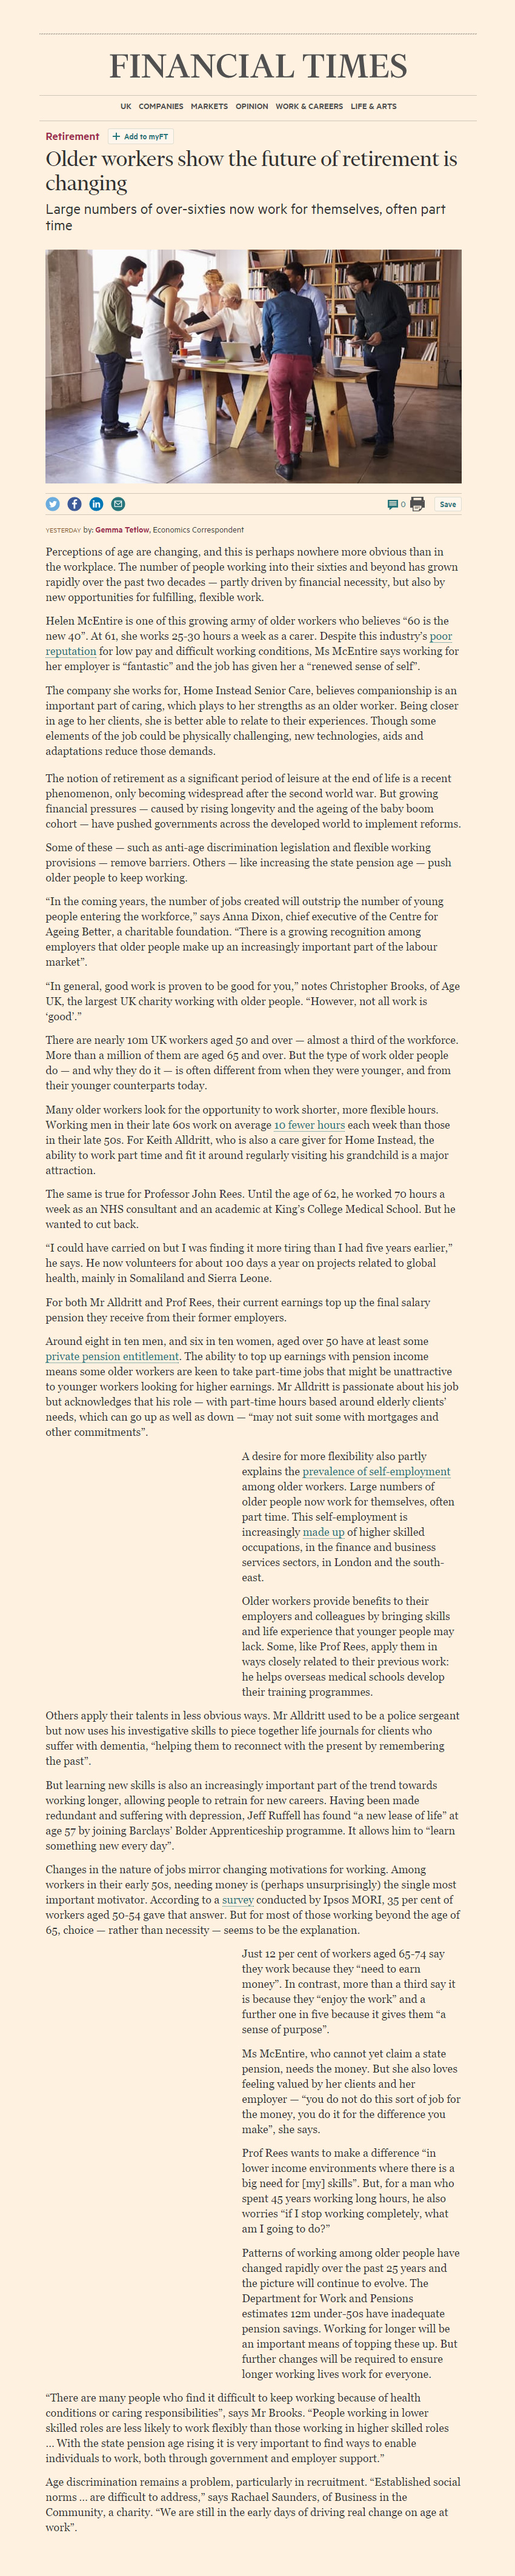 """Financial Times article: """"Older workers show the future of retirement is changing"""""""